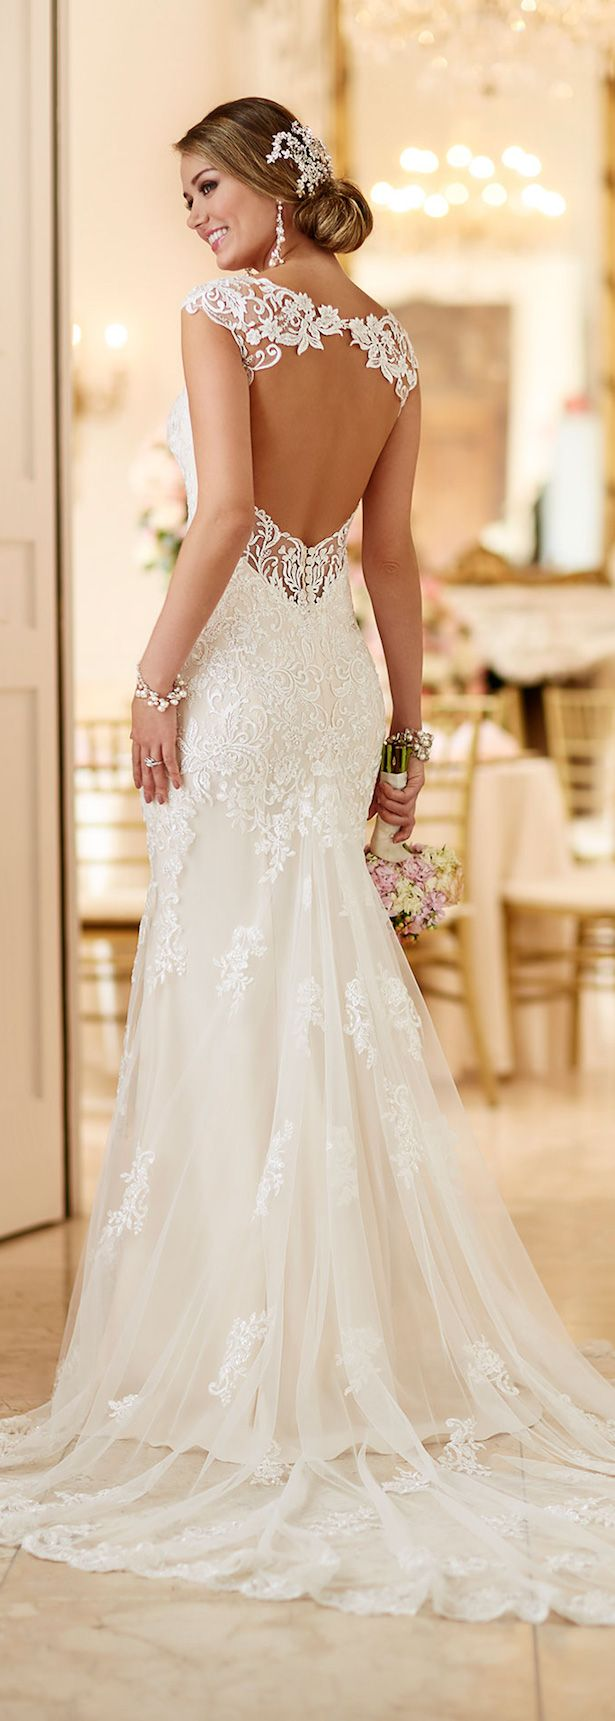 28 beautiful and best wedding dresses wedding dresses12 junglespirit Choice Image